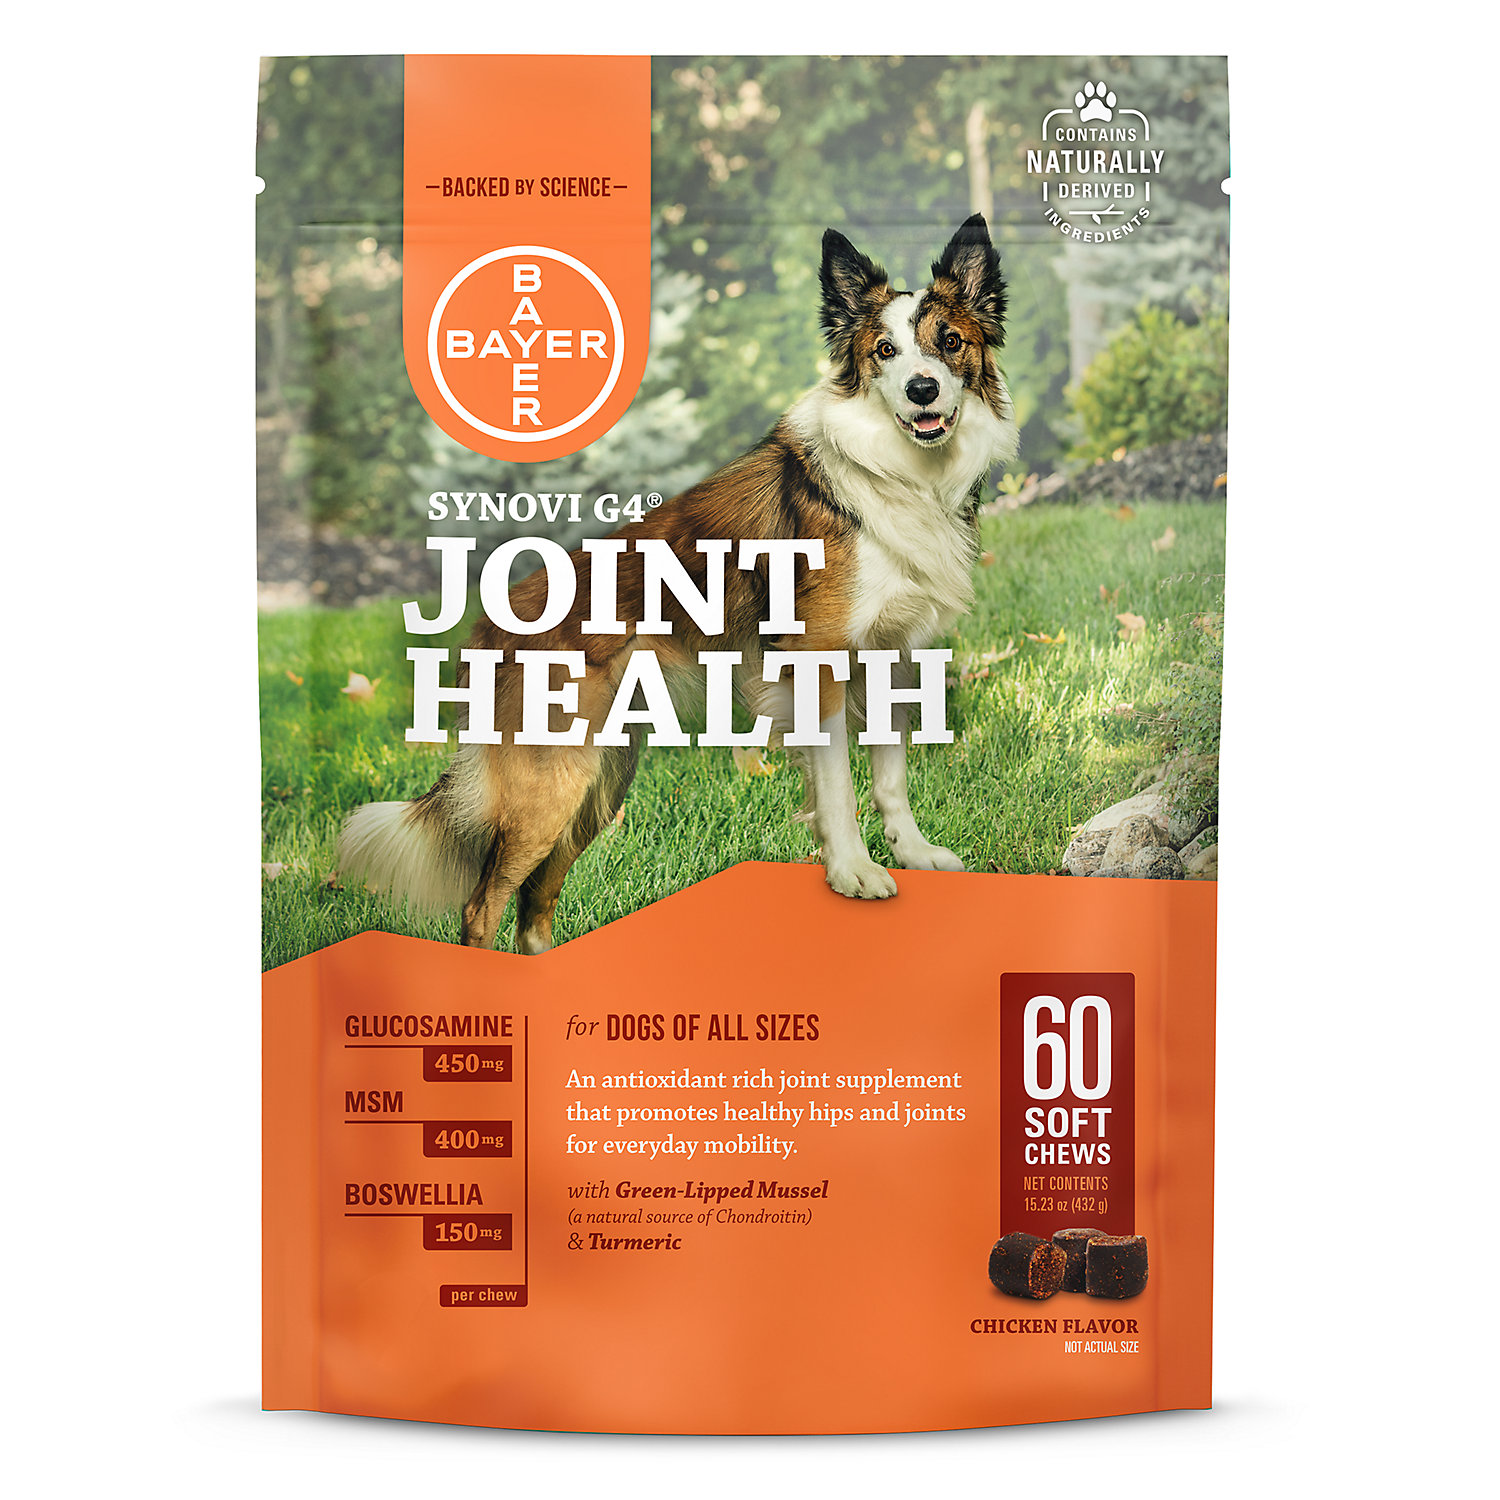 Bayer Synovi G4 Soft Chews Glucosamine Joint Supplement For Dogs